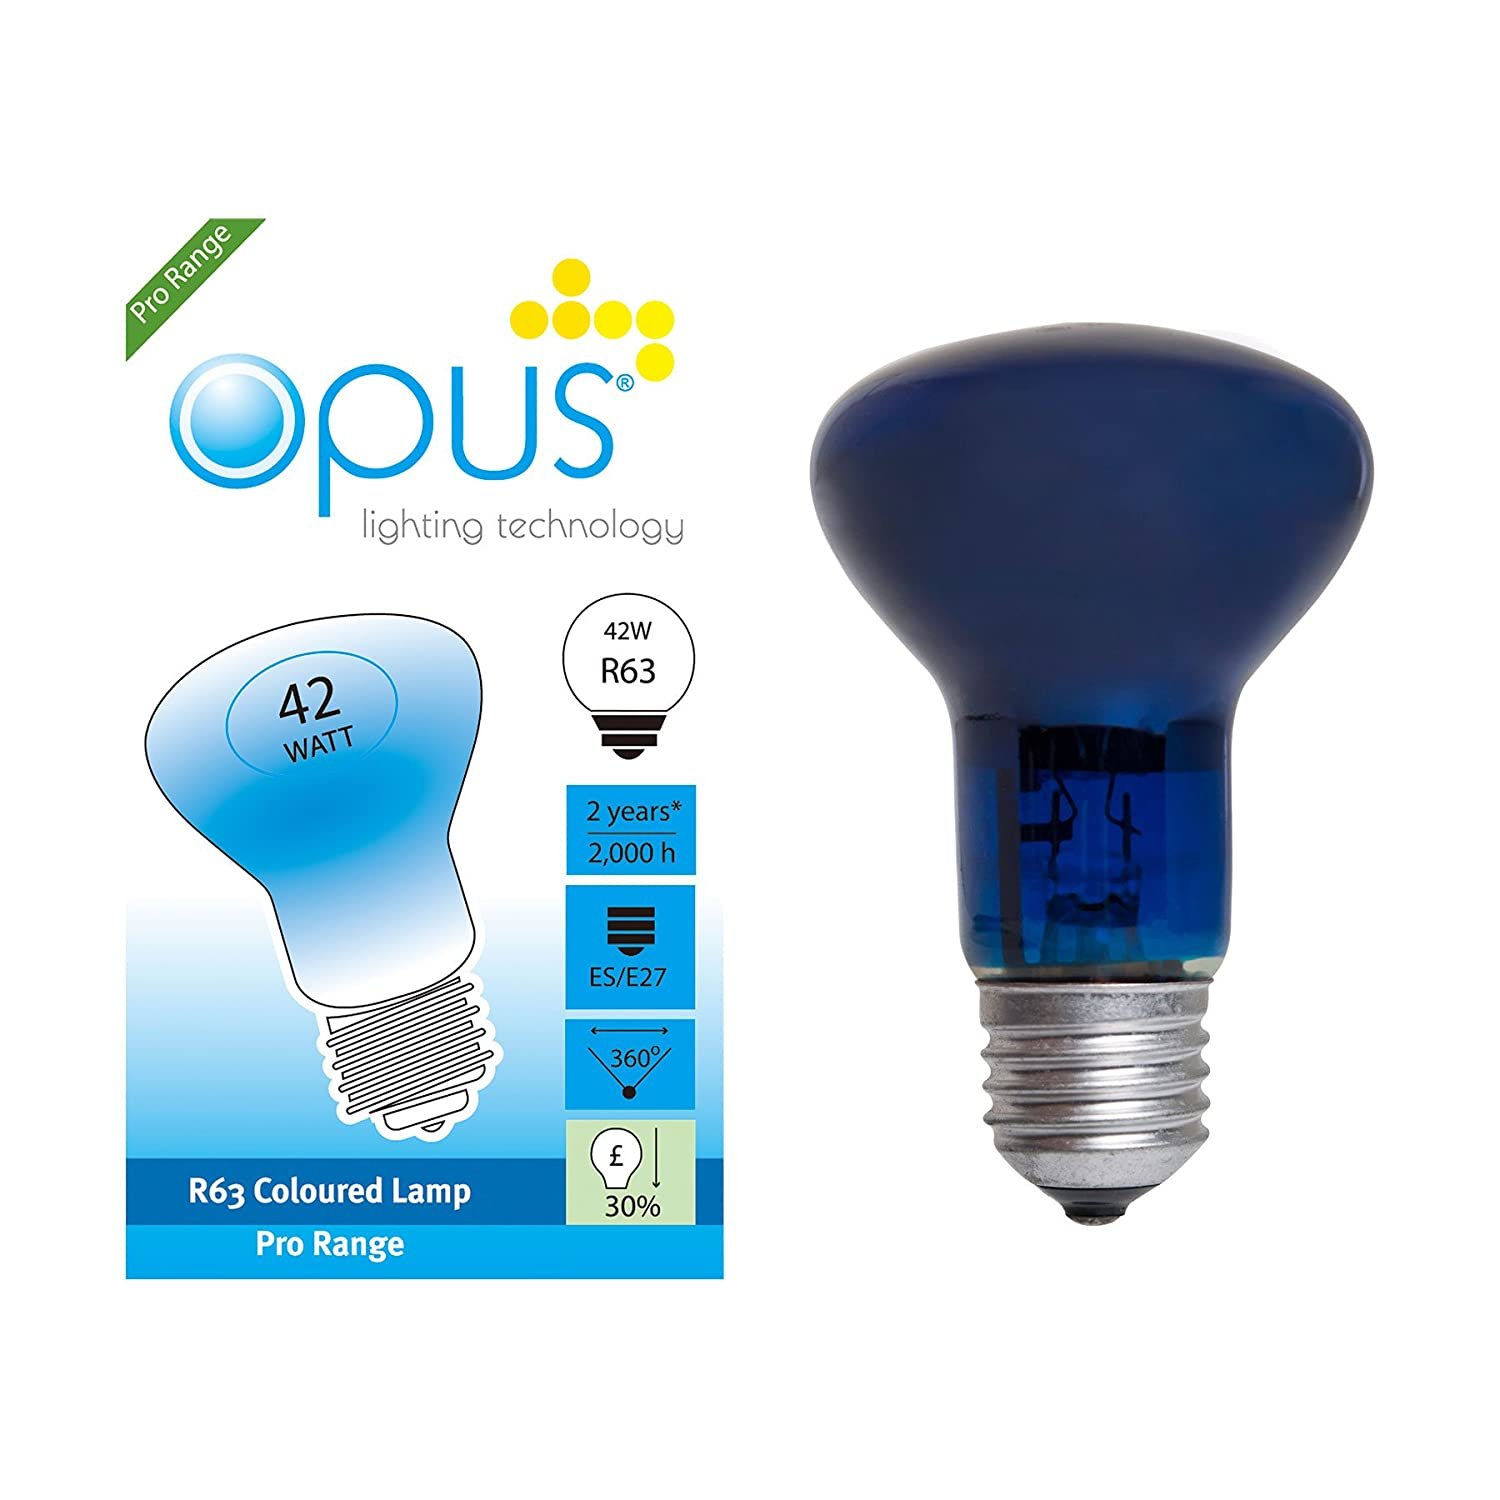 5 x Opus 28w = 40w GLS BC B22 Bayonet Cap Long Life Clear Eco Halogen Light Bulbs Dimmable Energy Saving Lamps Pack